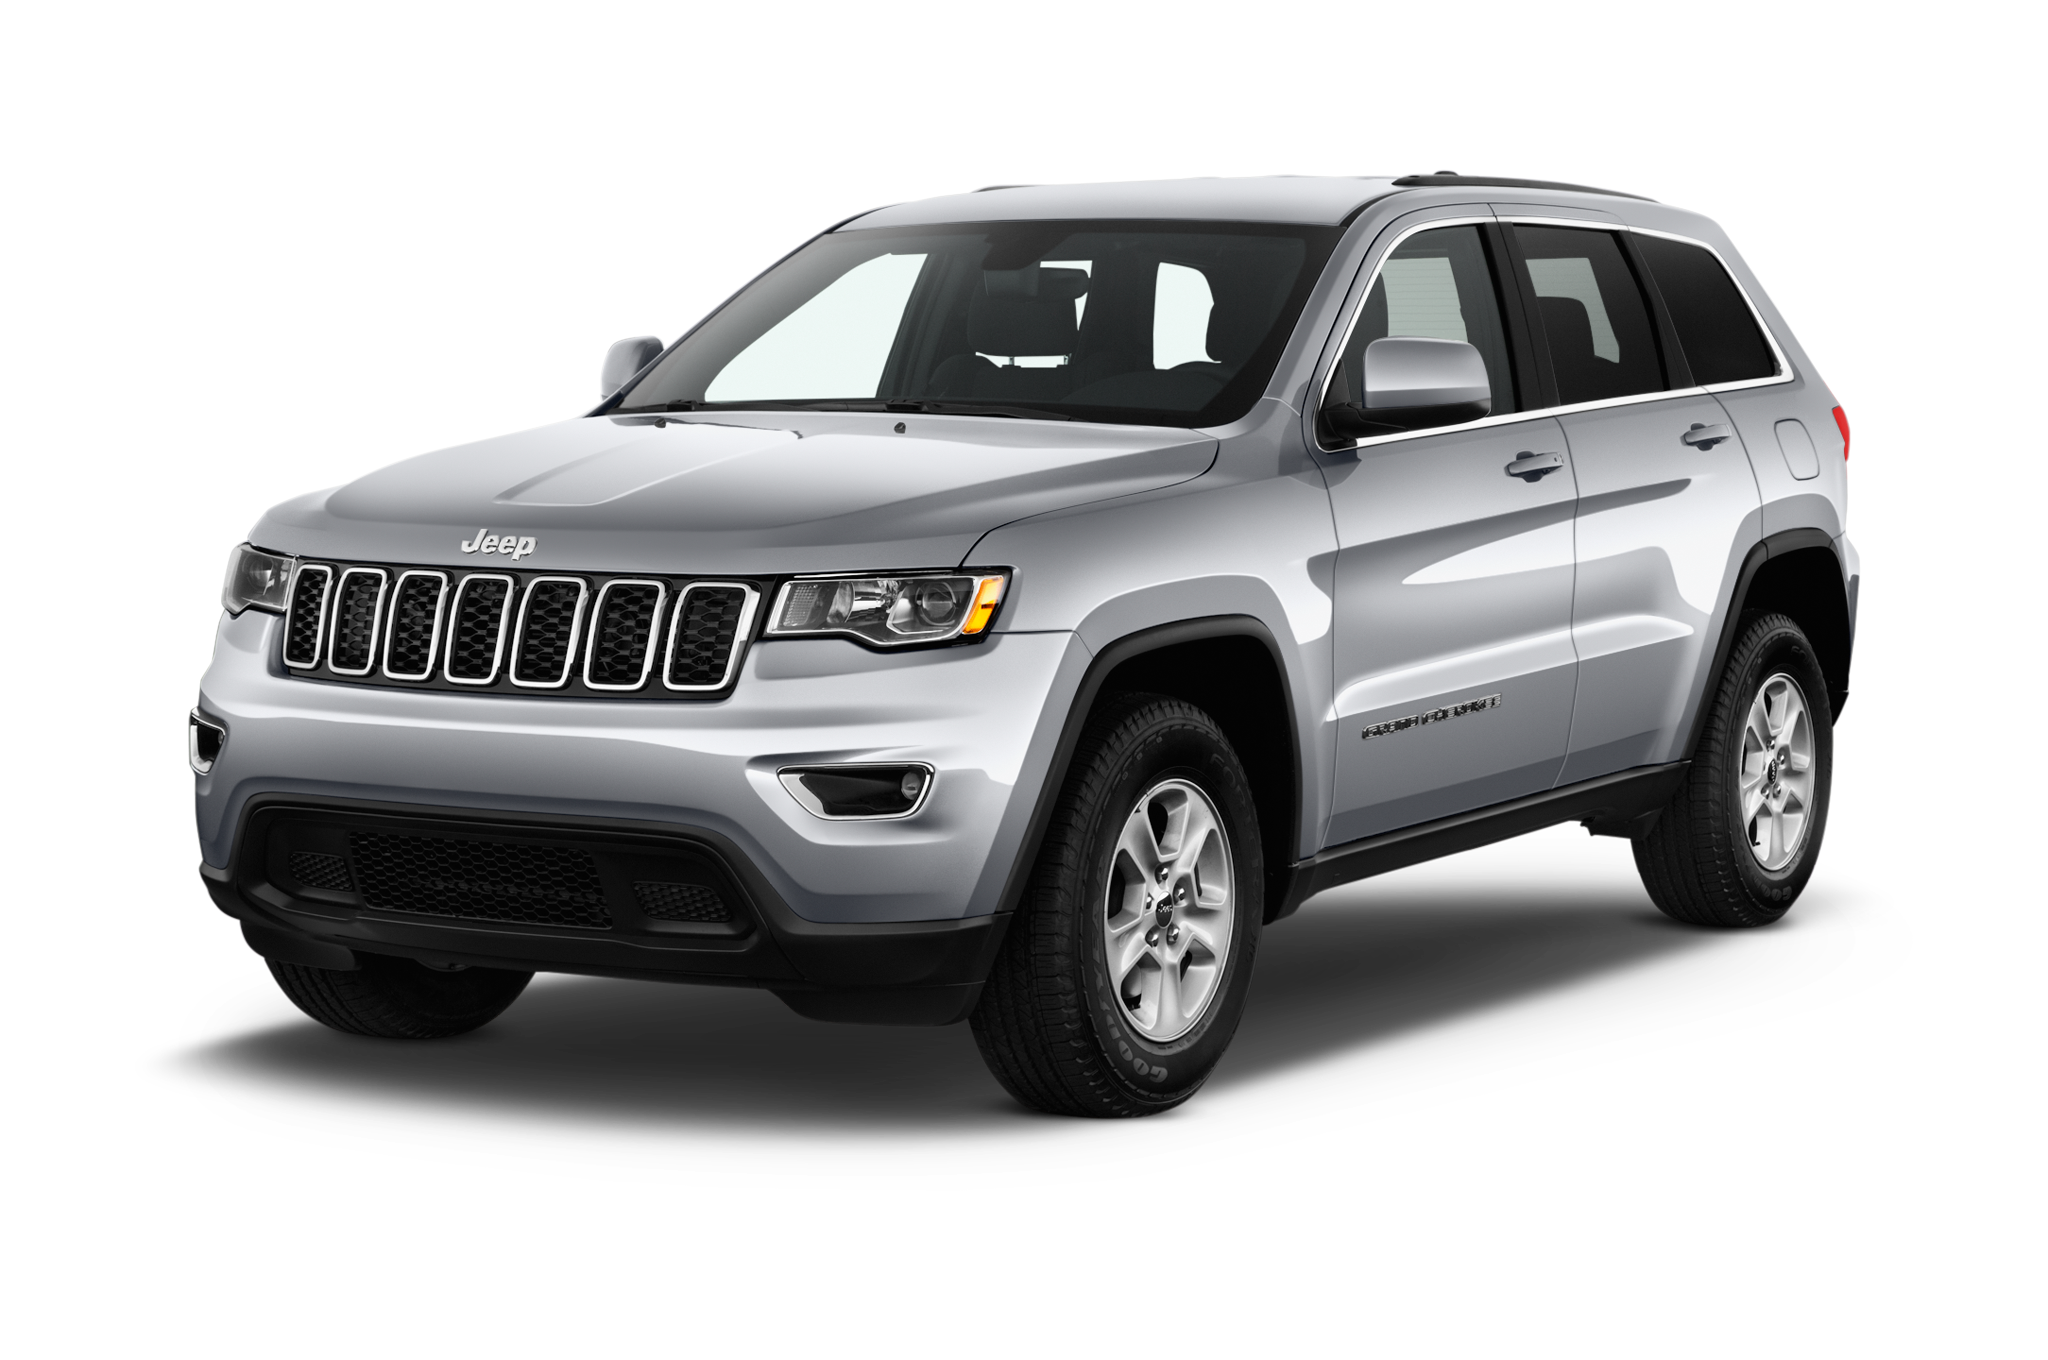 Jeep Png Image Carros